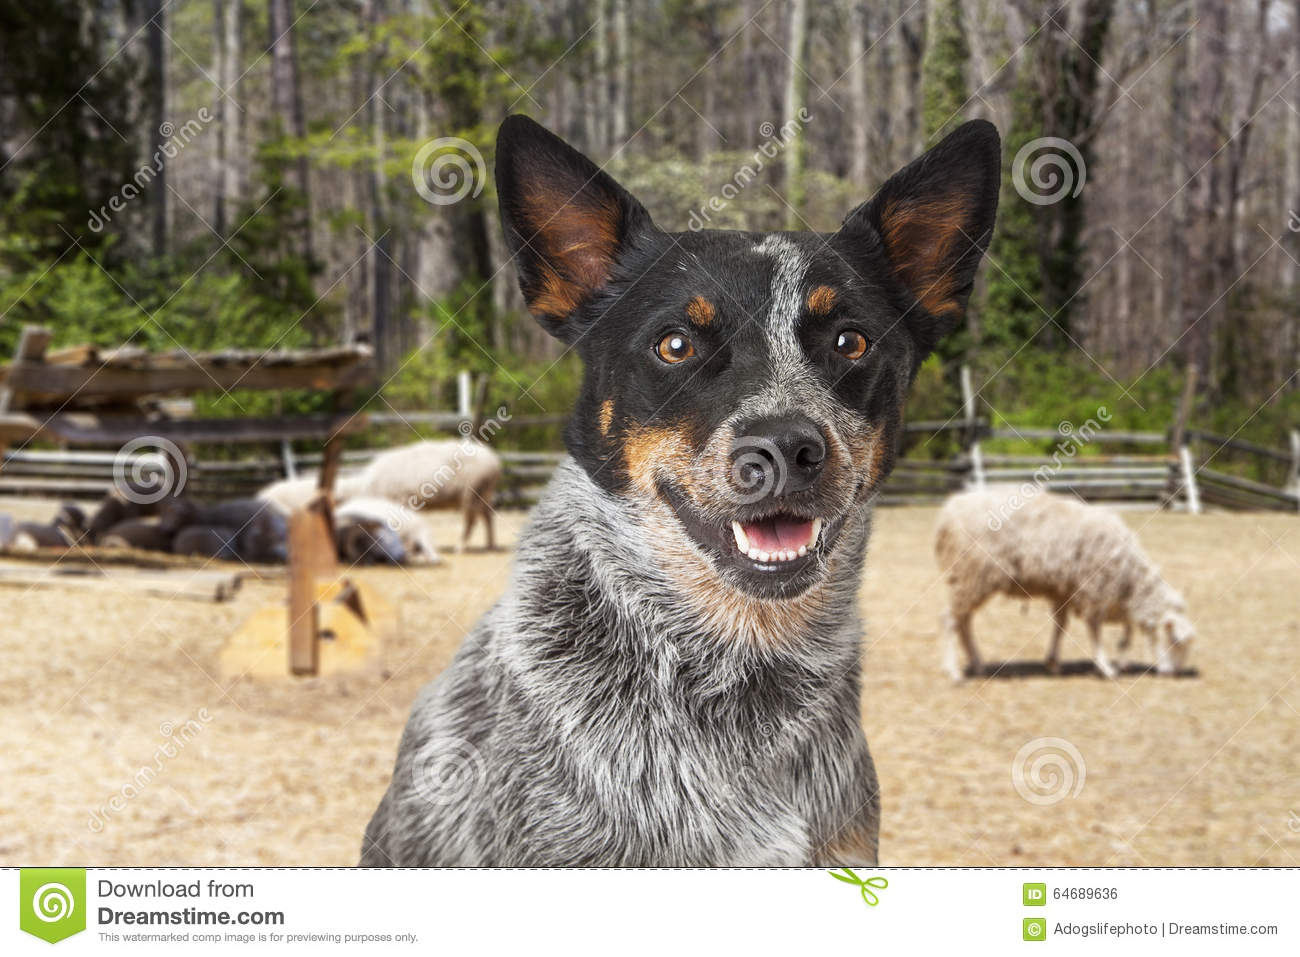 Australian Cattle Dog With Sheep in Background